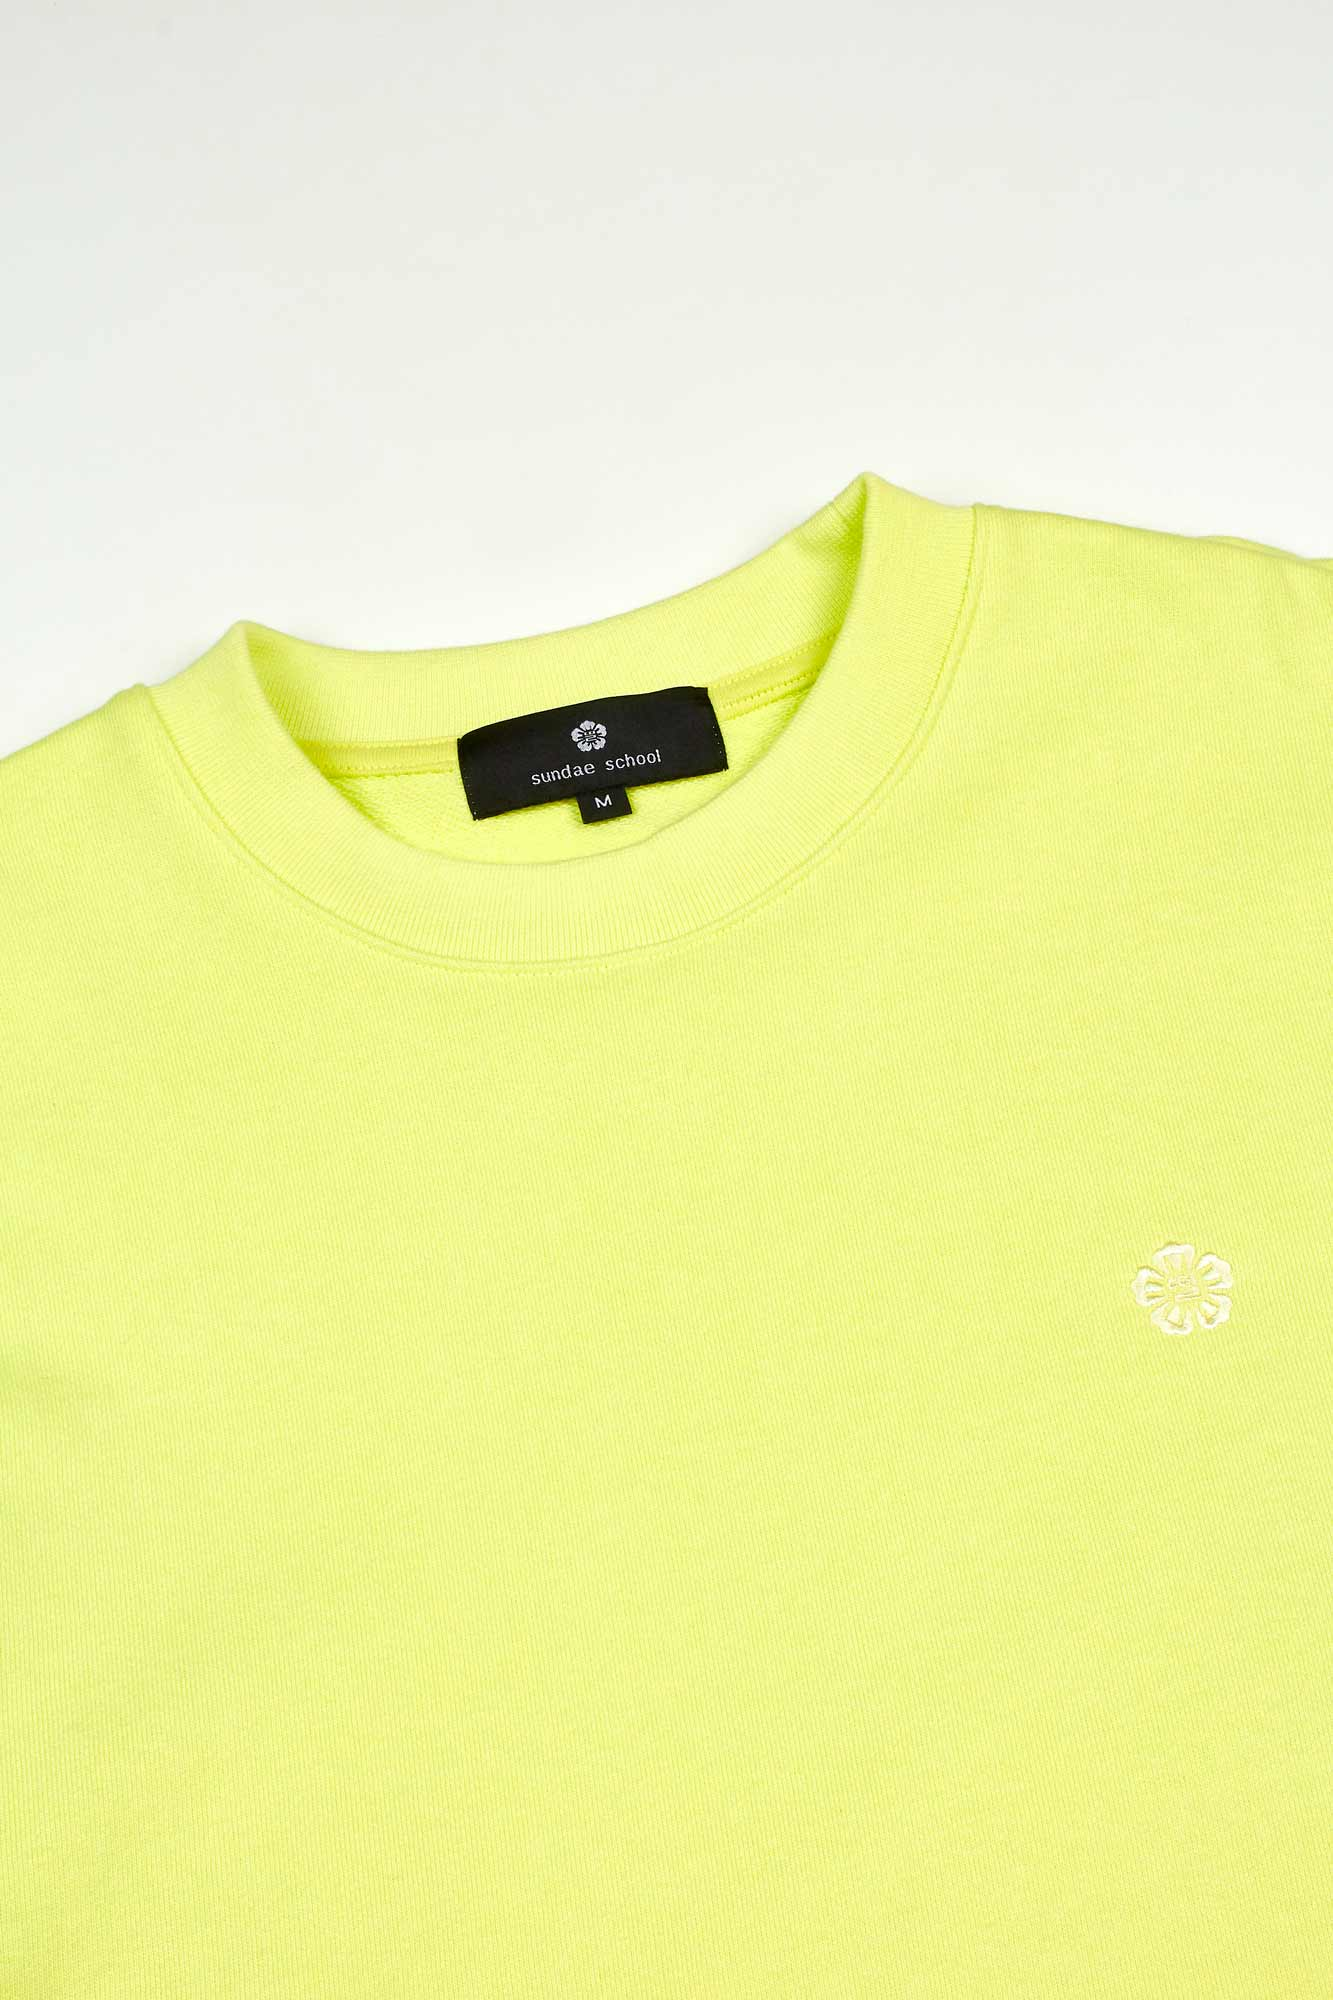 Photo of Lemonade Uniform Crewneck, number 4